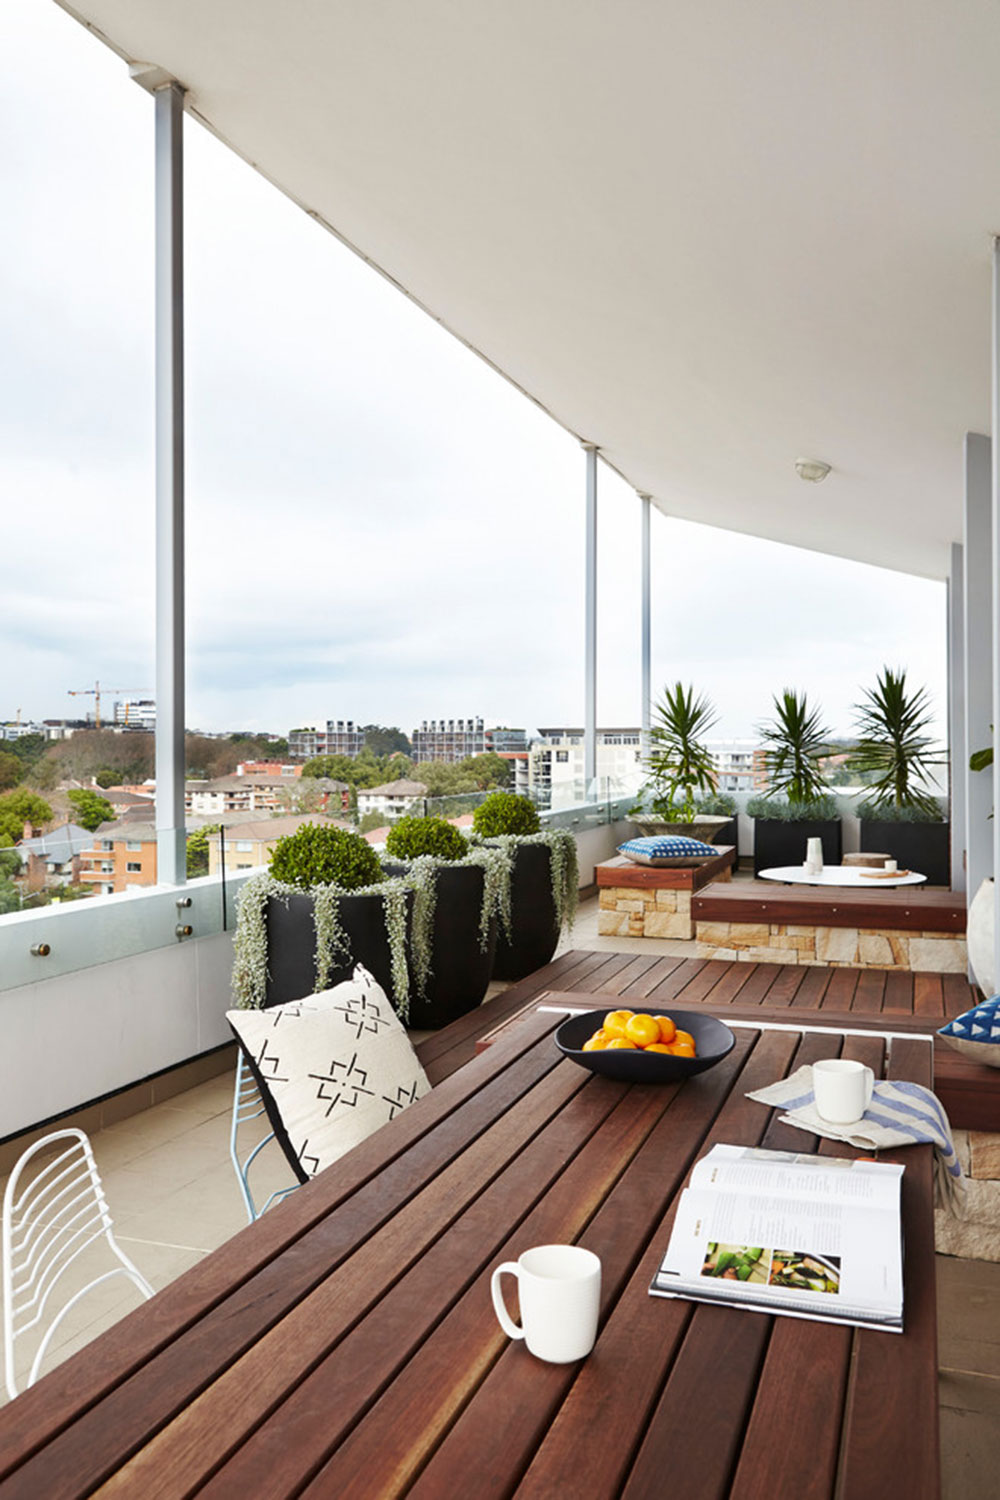 How to decorate an apartment balcony3 How to decorate an apartment balcony